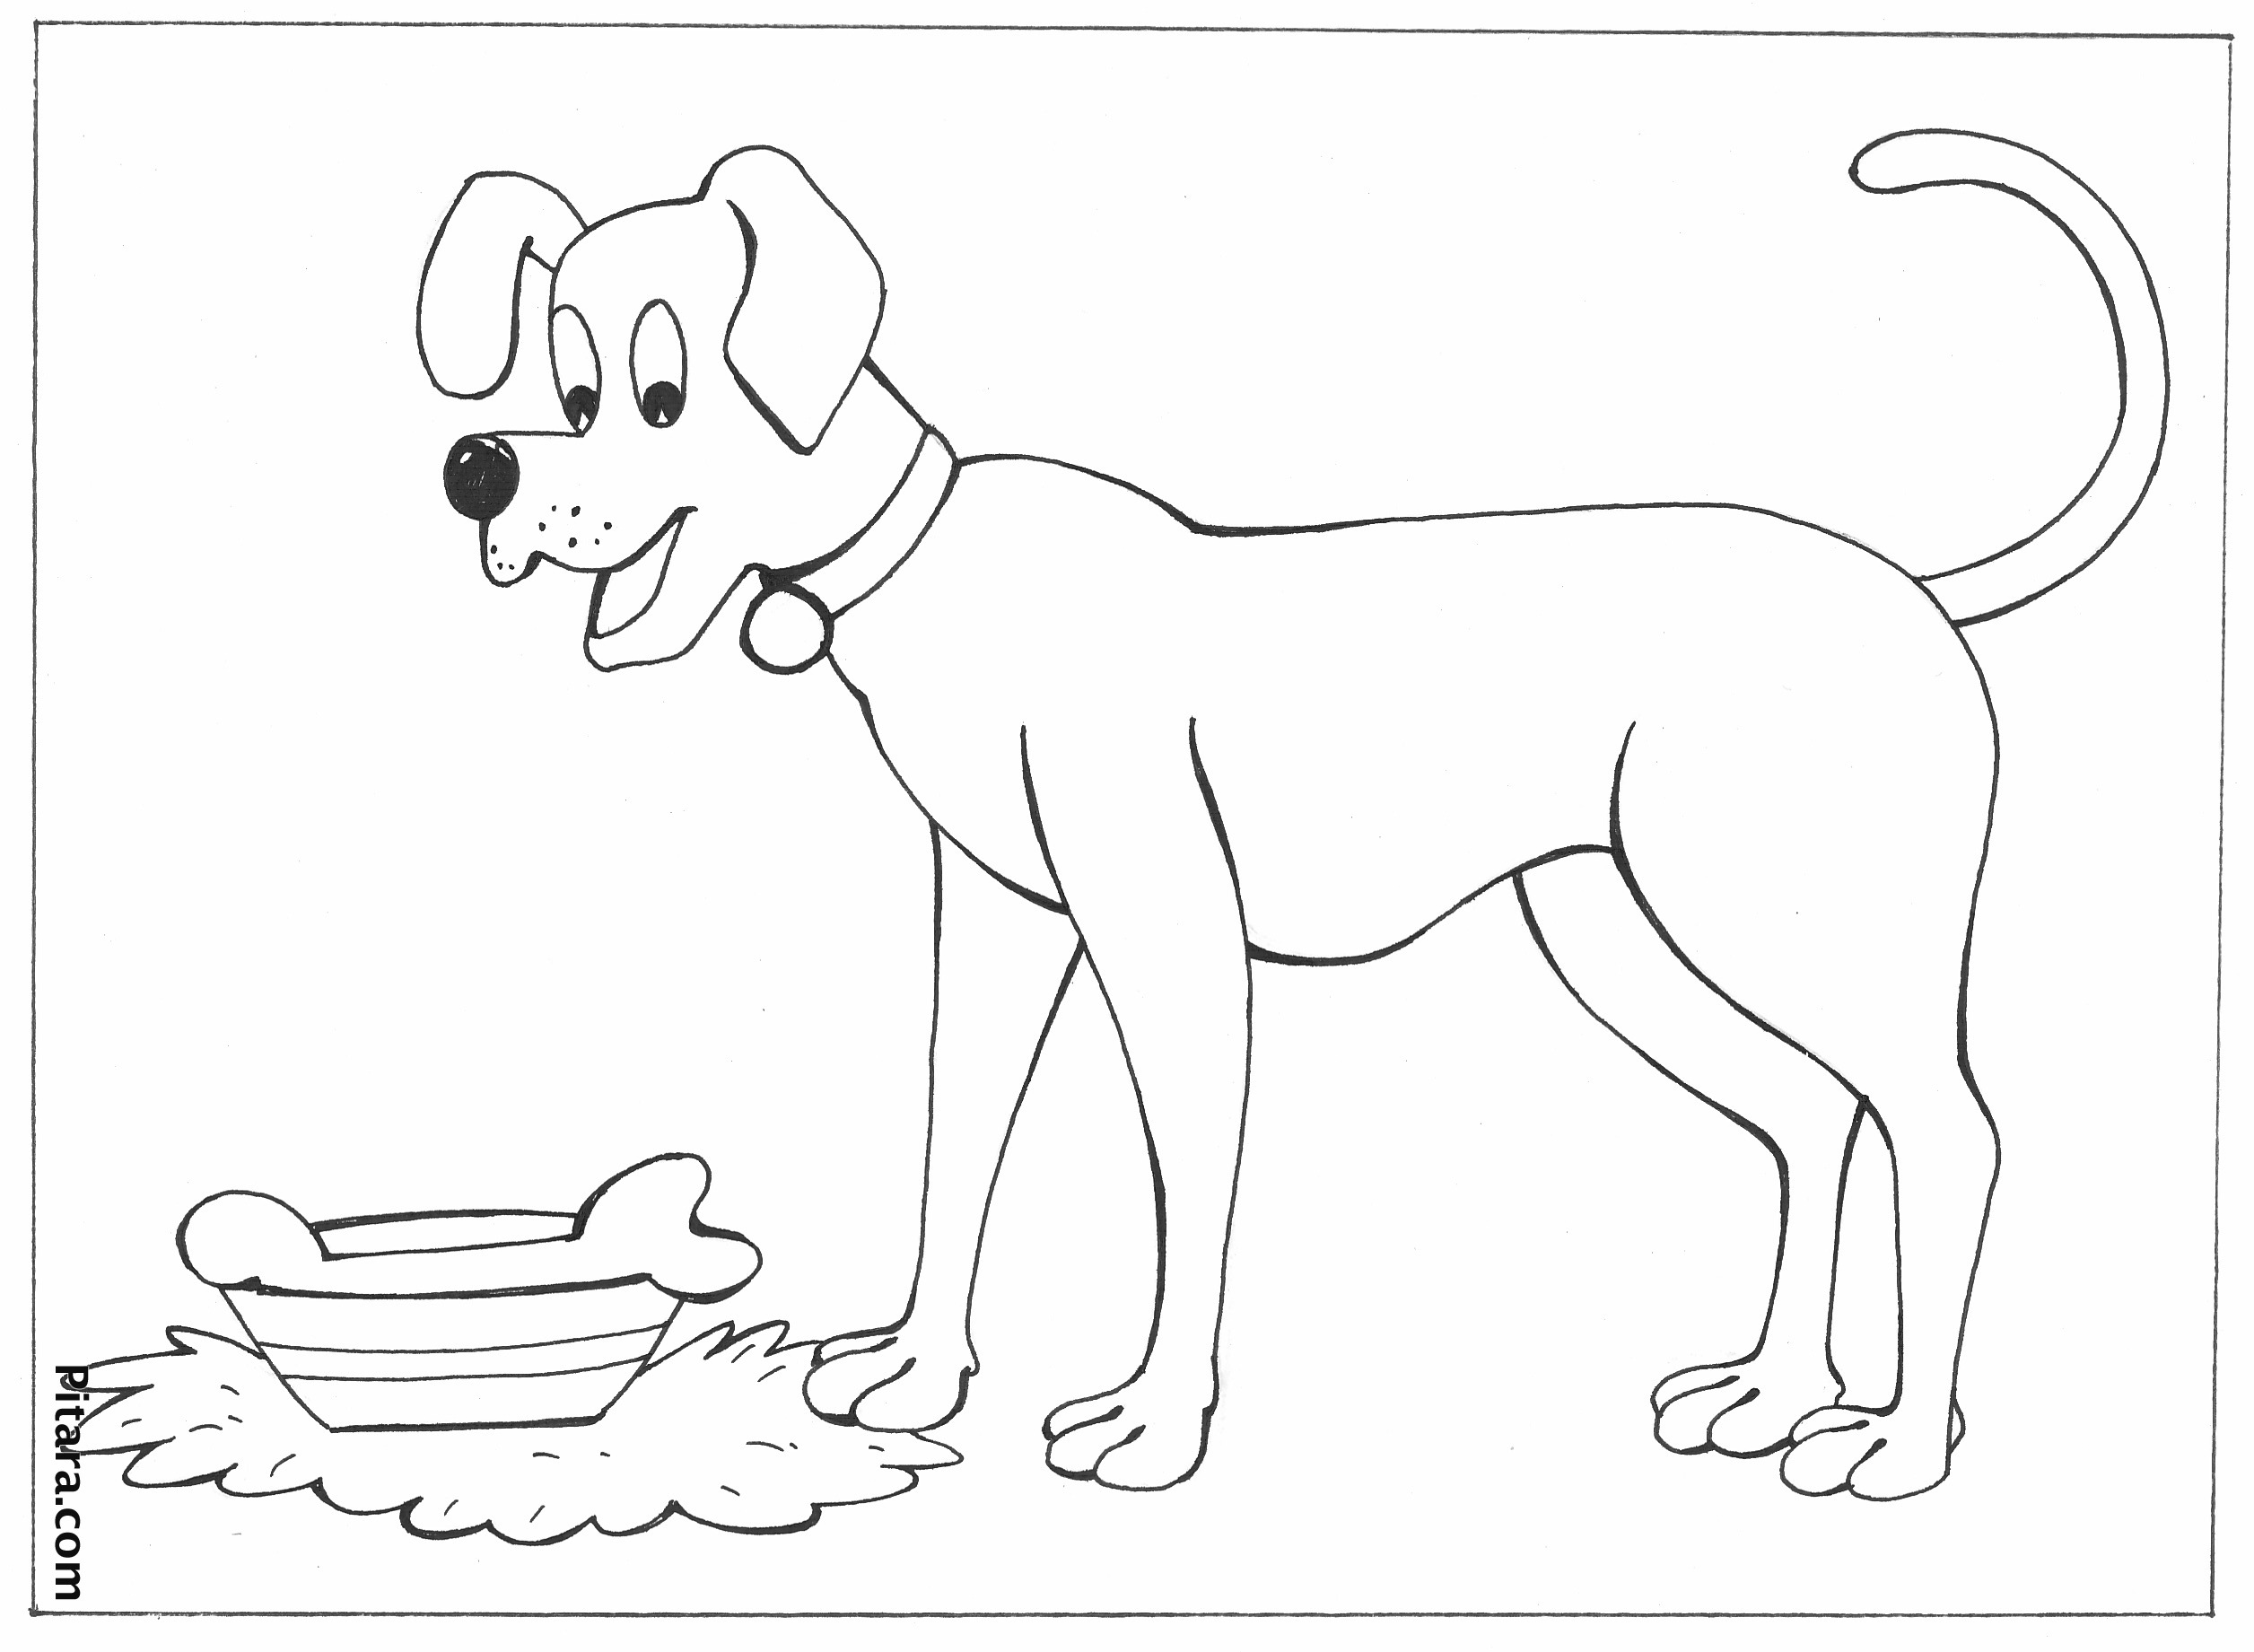 animal pictures coloring pages adult coloring pages animals best coloring pages for kids coloring pictures animal pages